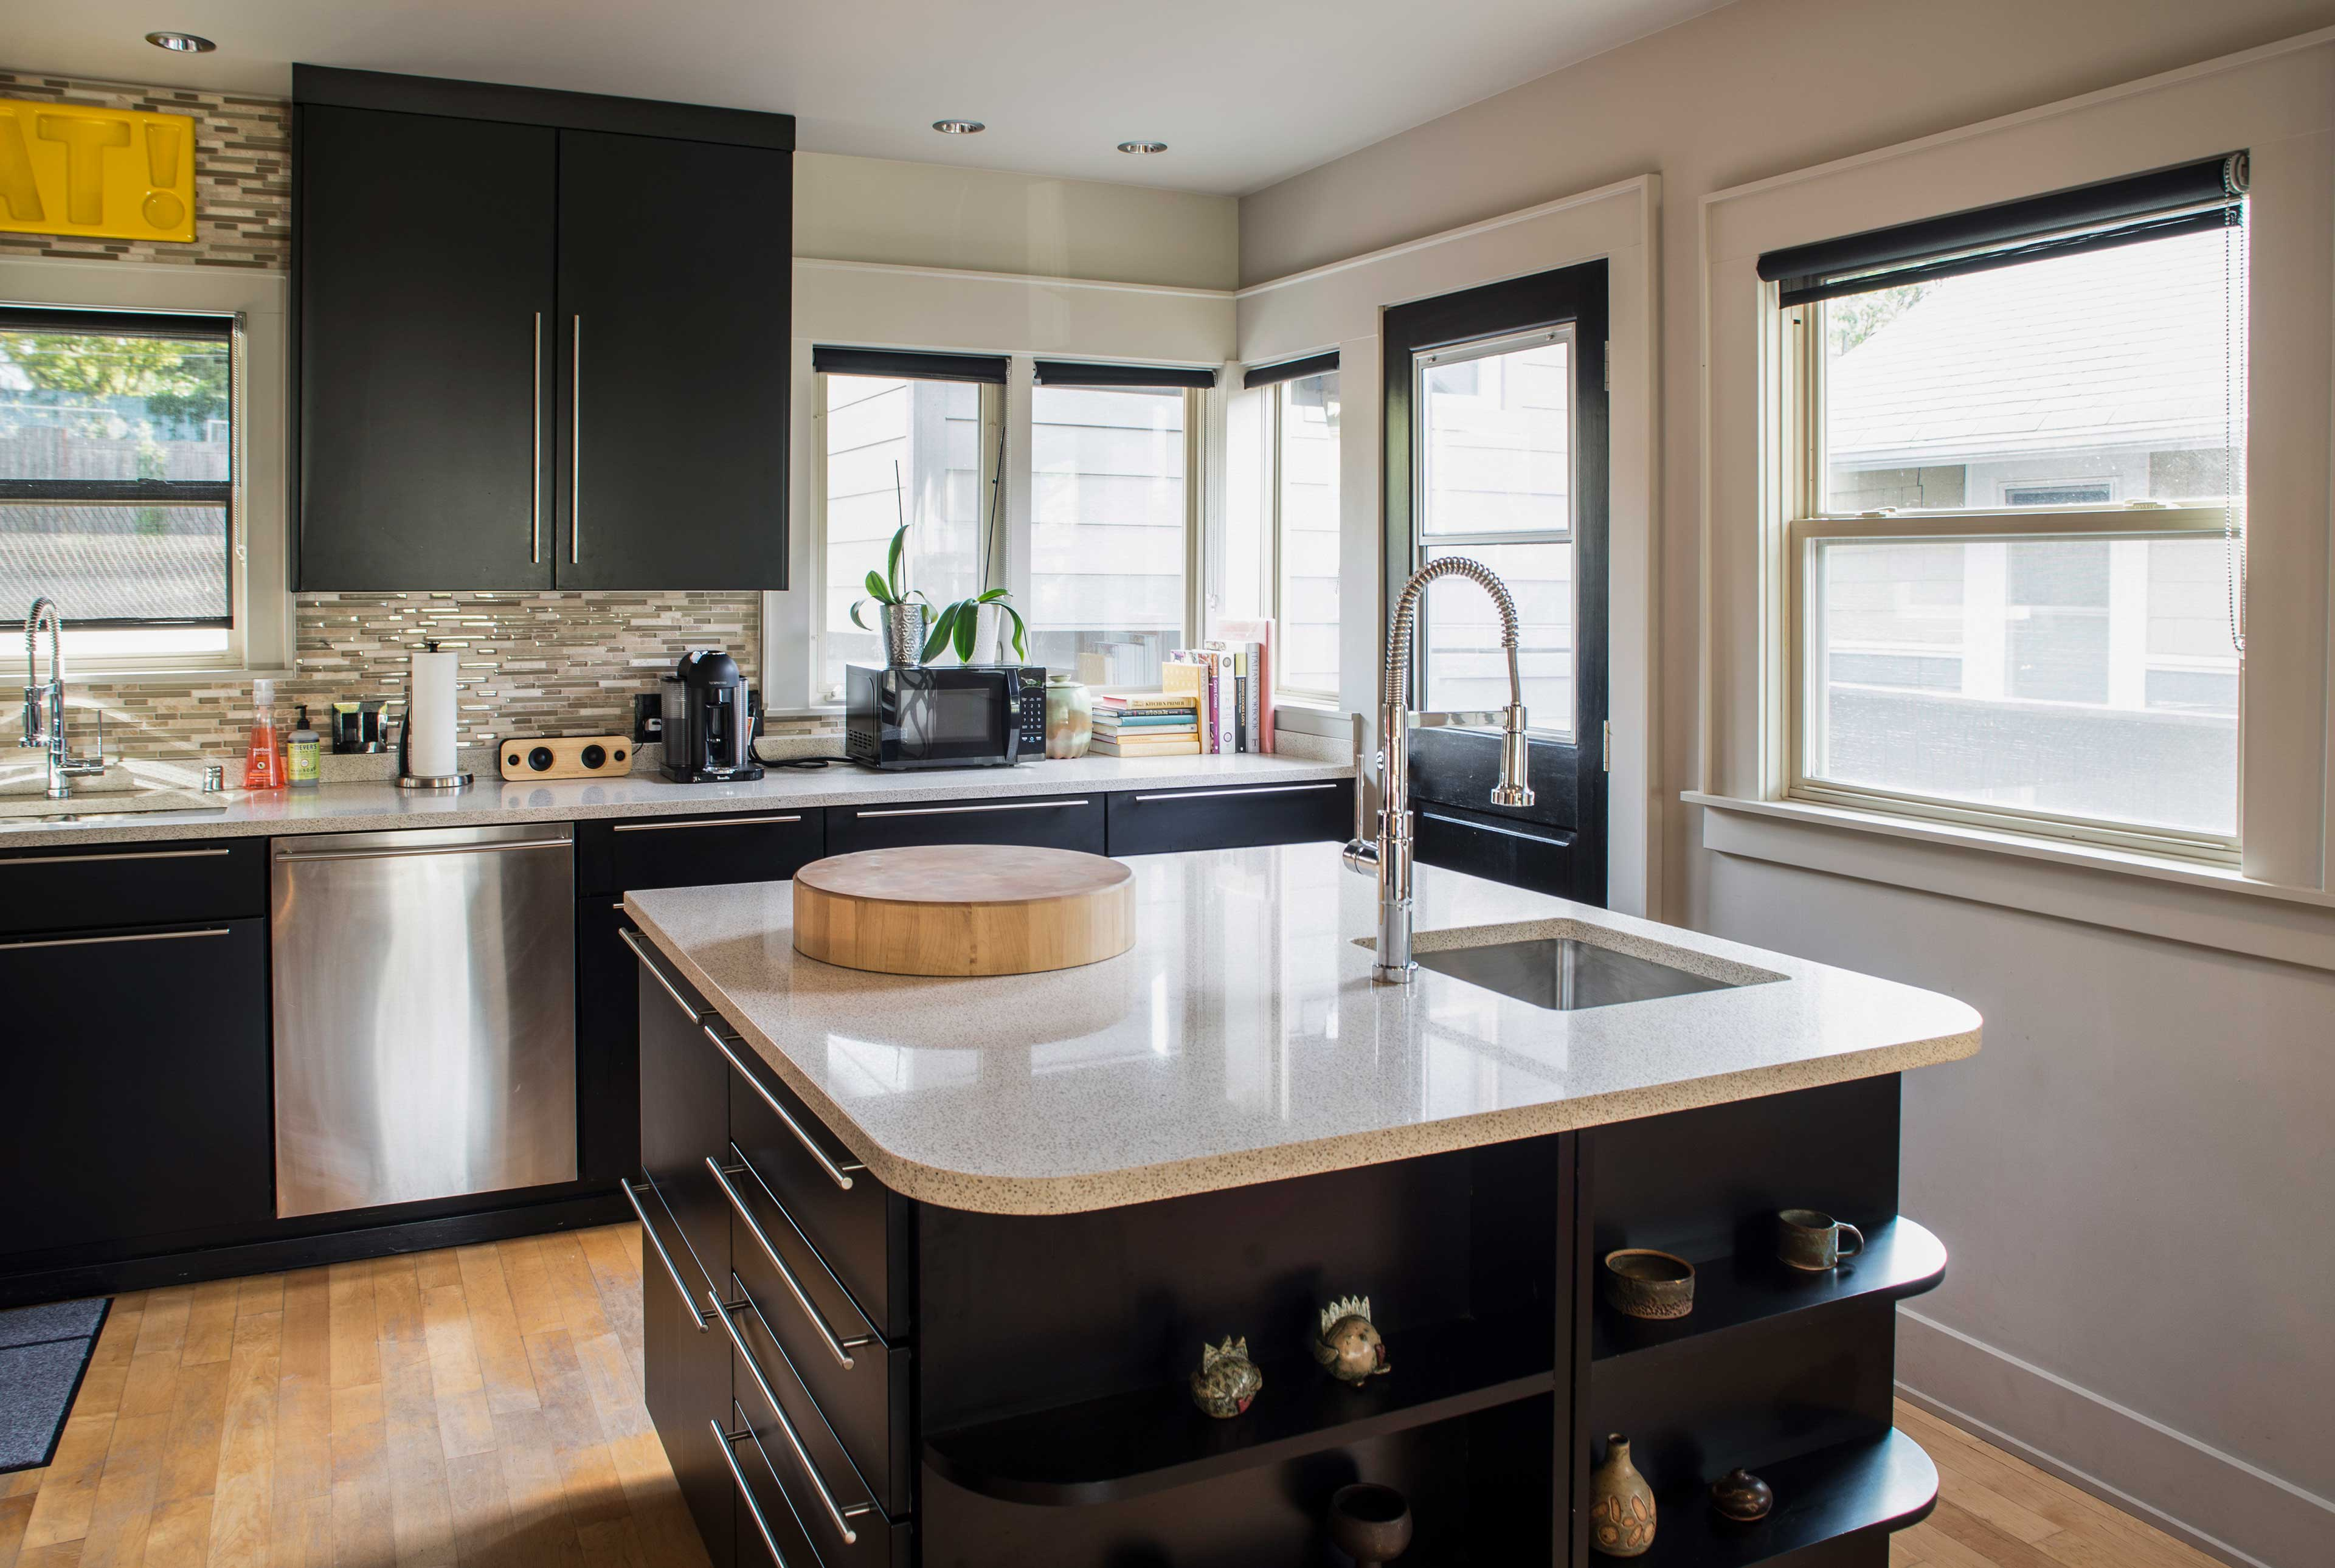 The kitchen comes fully equipped with stainless steel appliances.